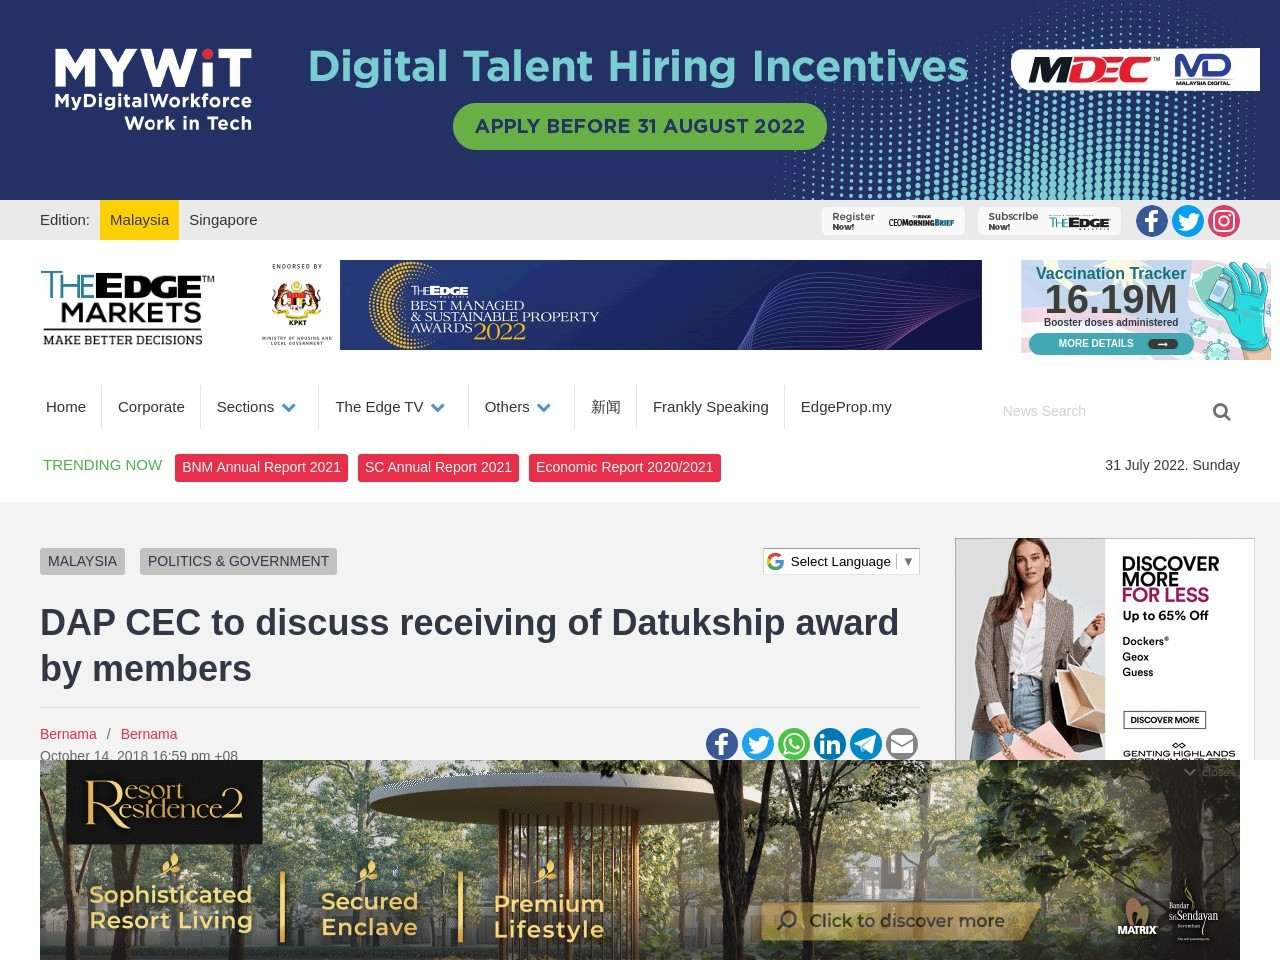 DAP CEC to discuss receiving of Datukship award by members